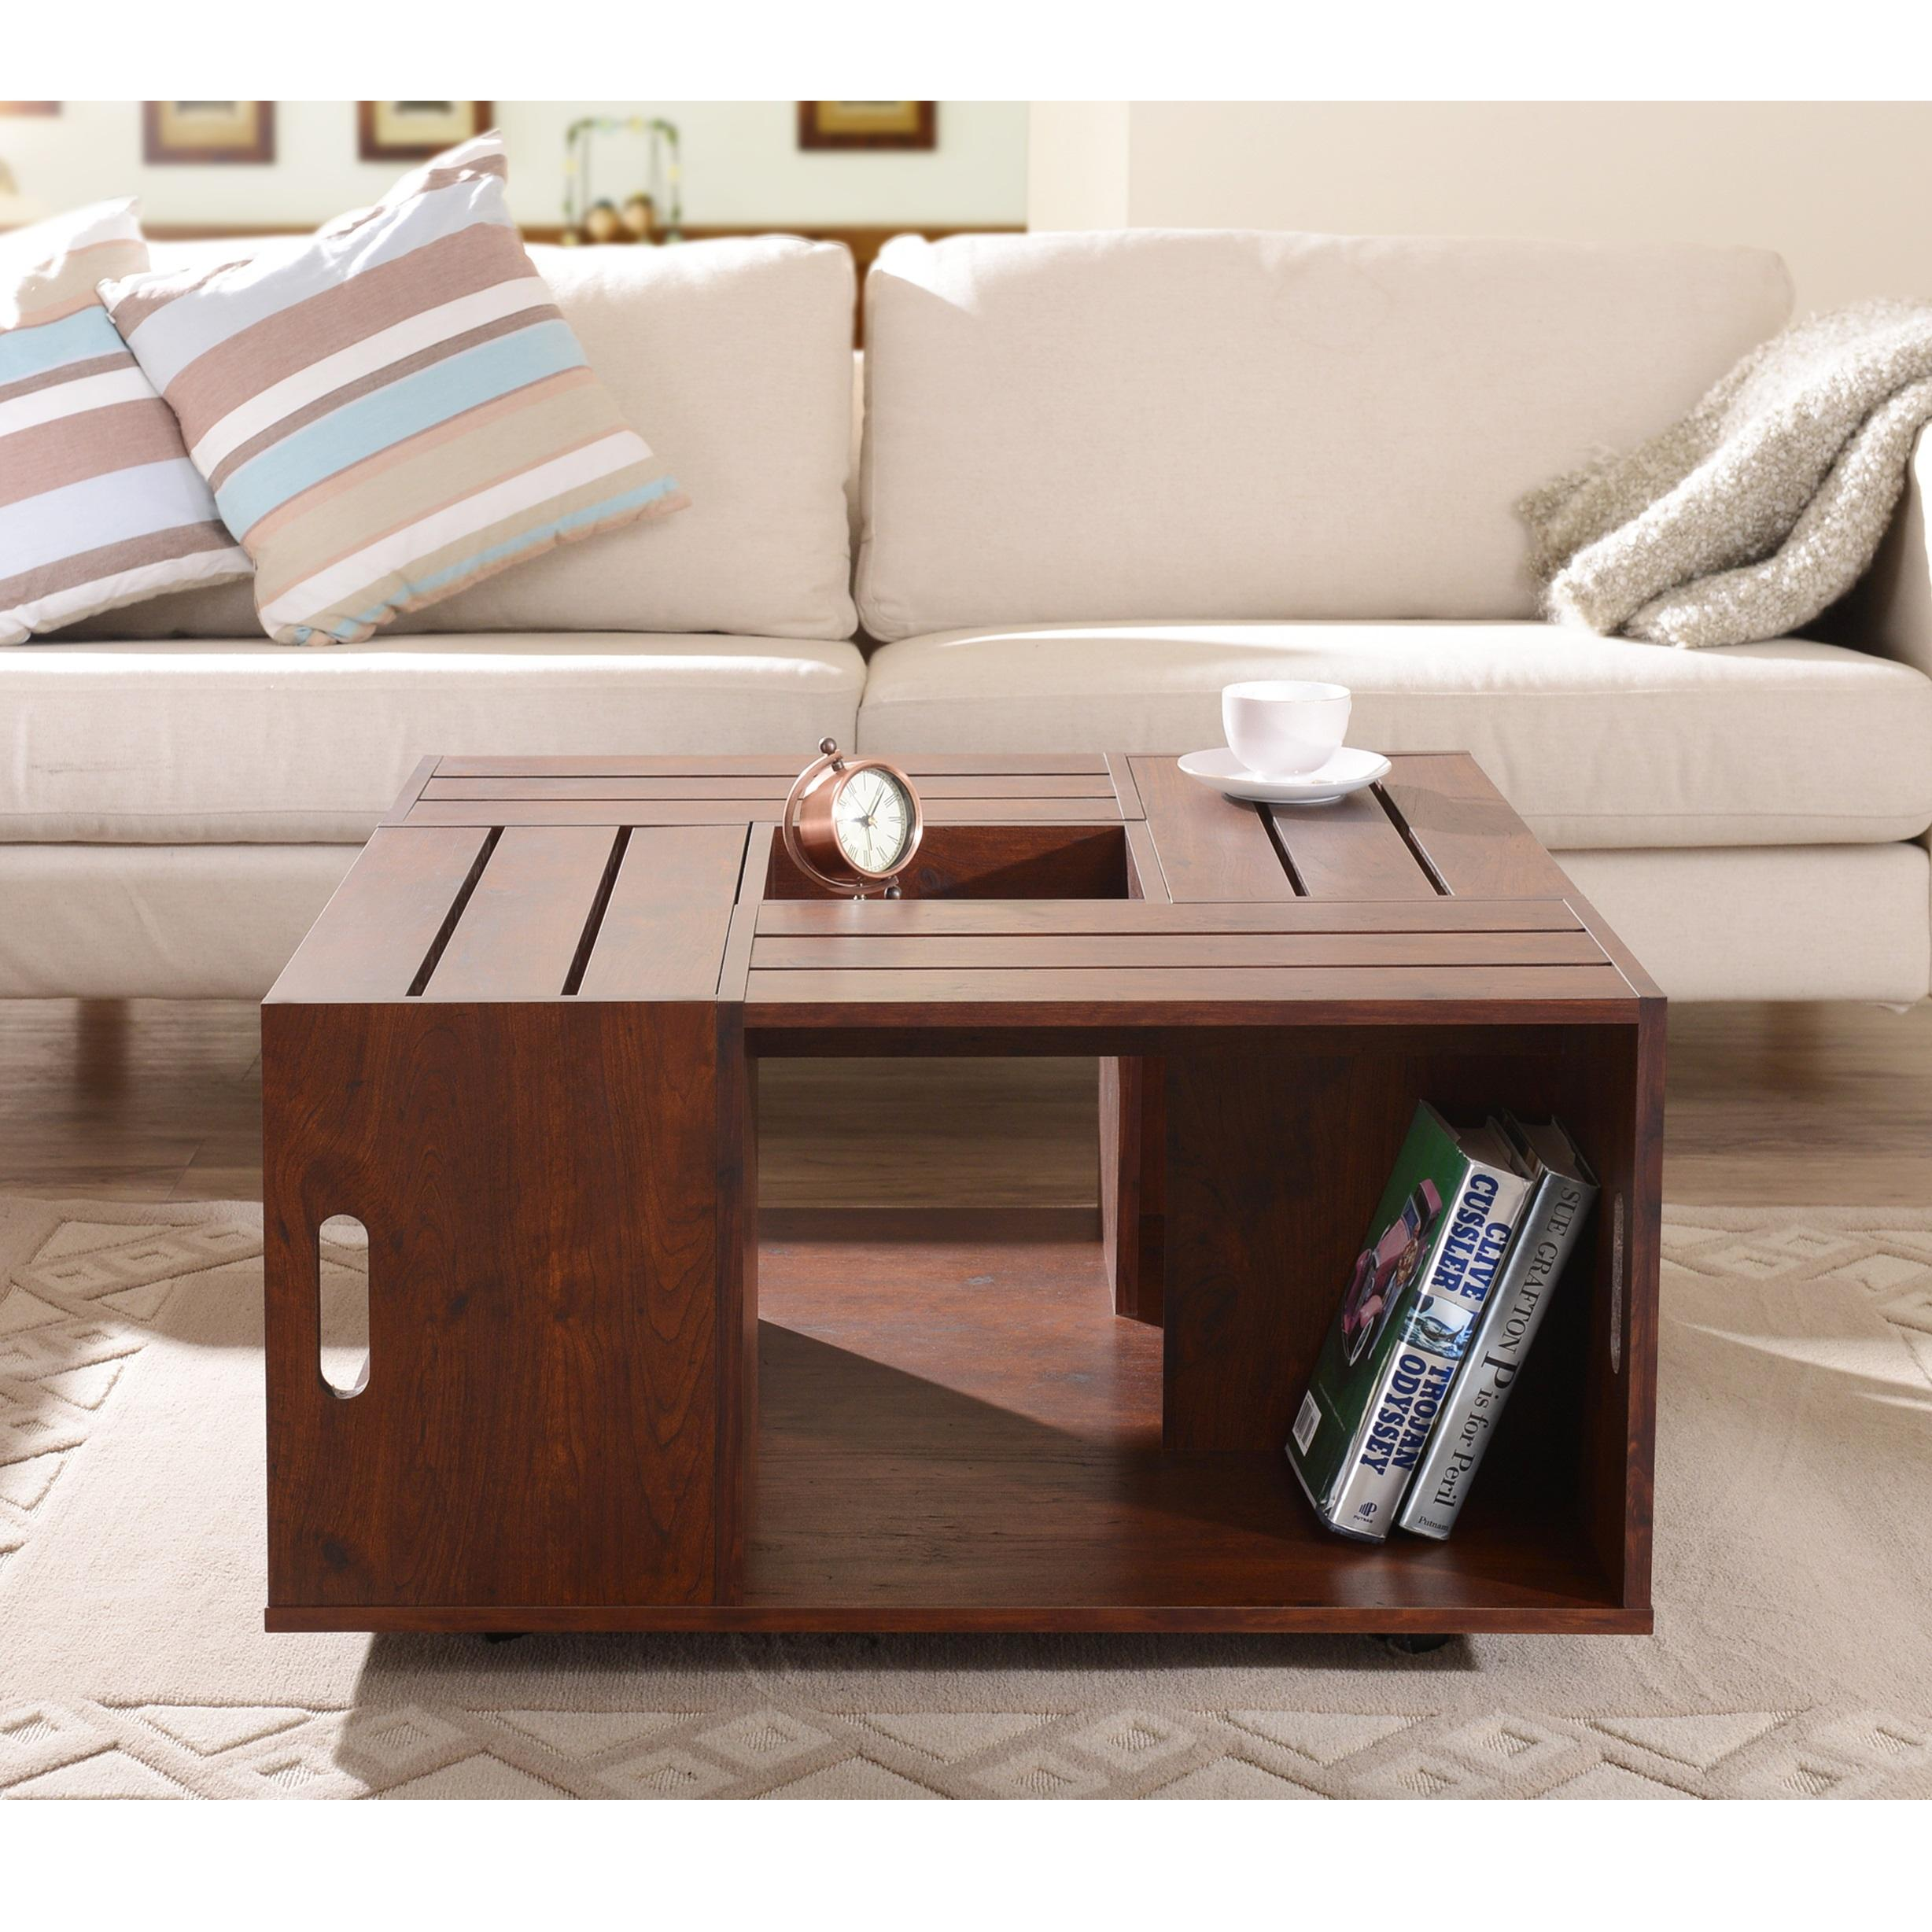 Square coffee tables large wood coffee tables in furniture category - Square Coffee Tables Wood Larger Square Coffee Tables Wood And Image